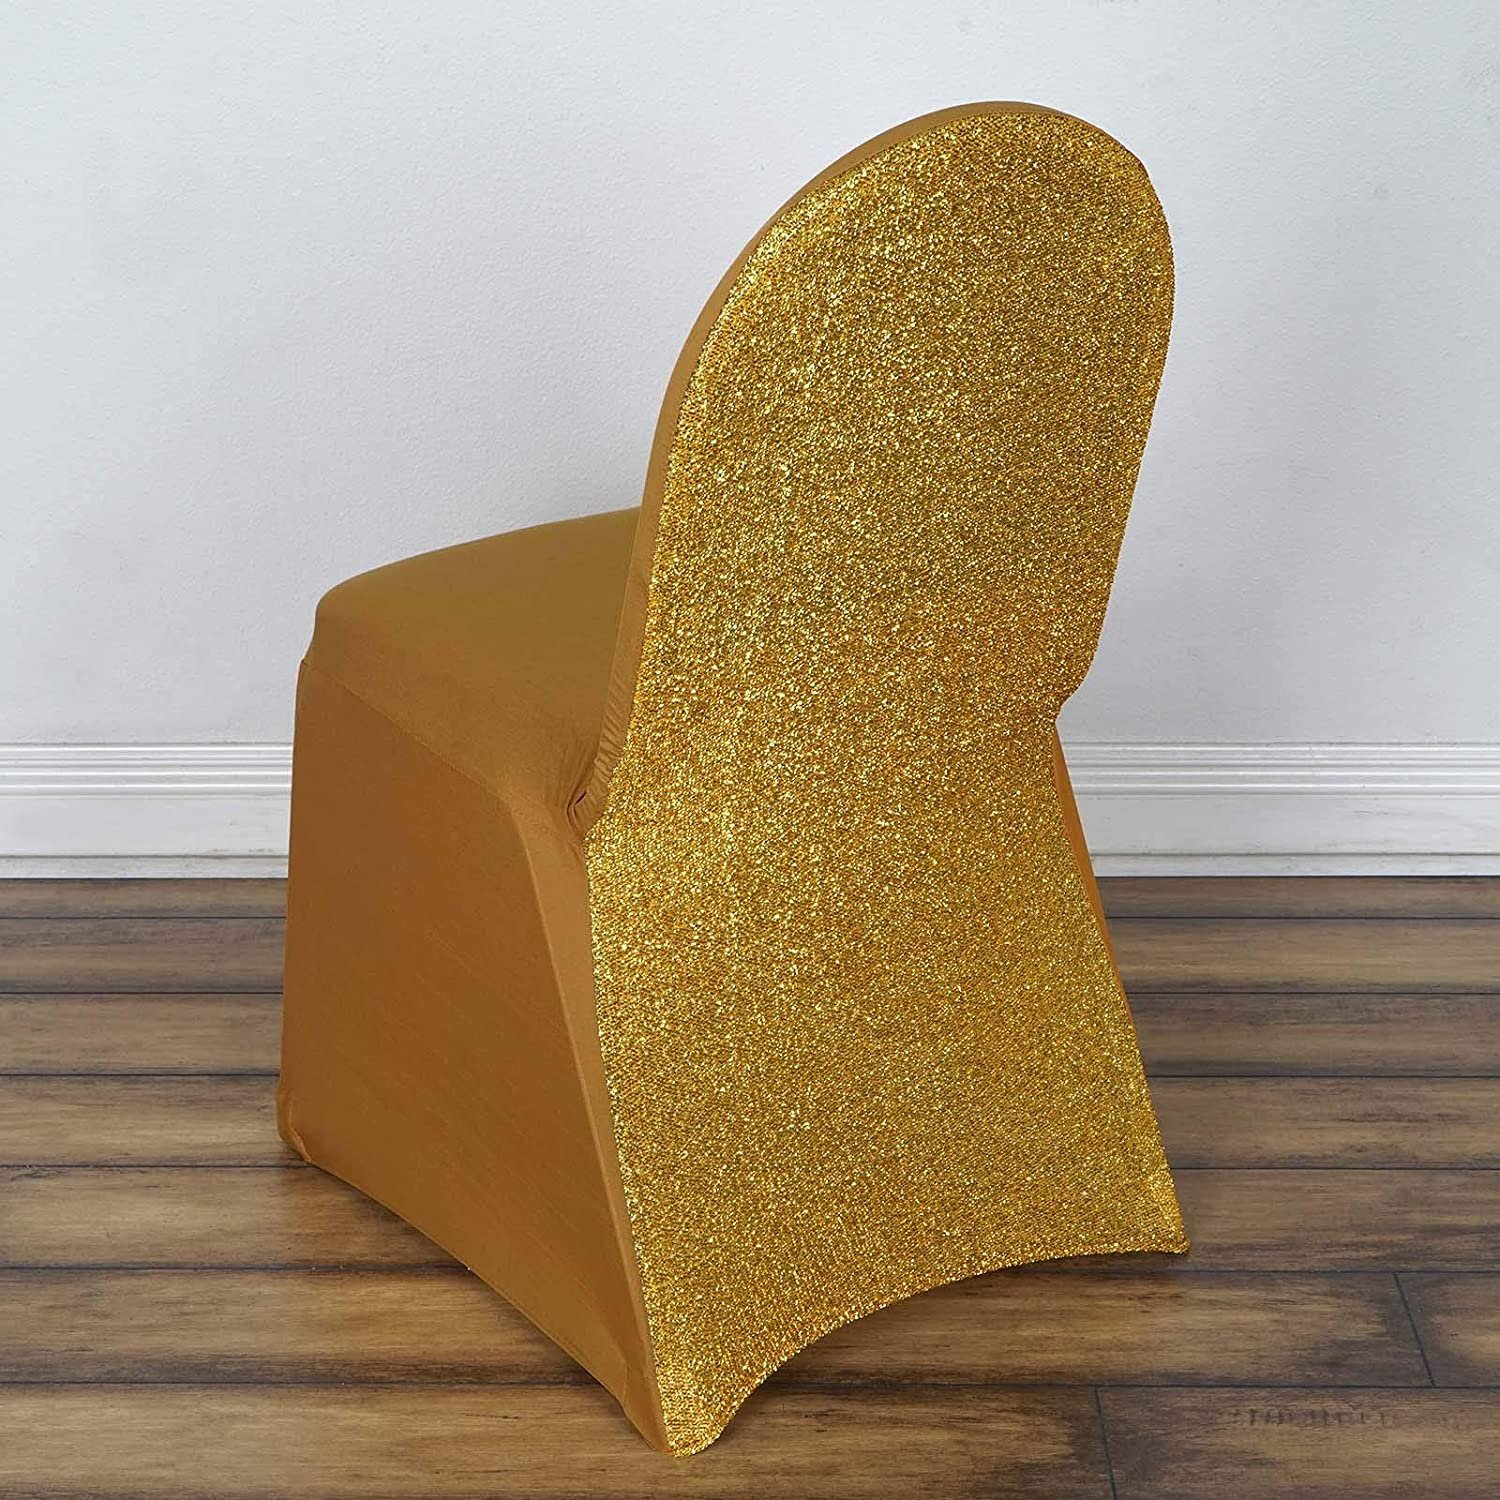 1//4PCS Gilding Spandex Chair Covers Wedding Party Arched front Metal Gold Silver